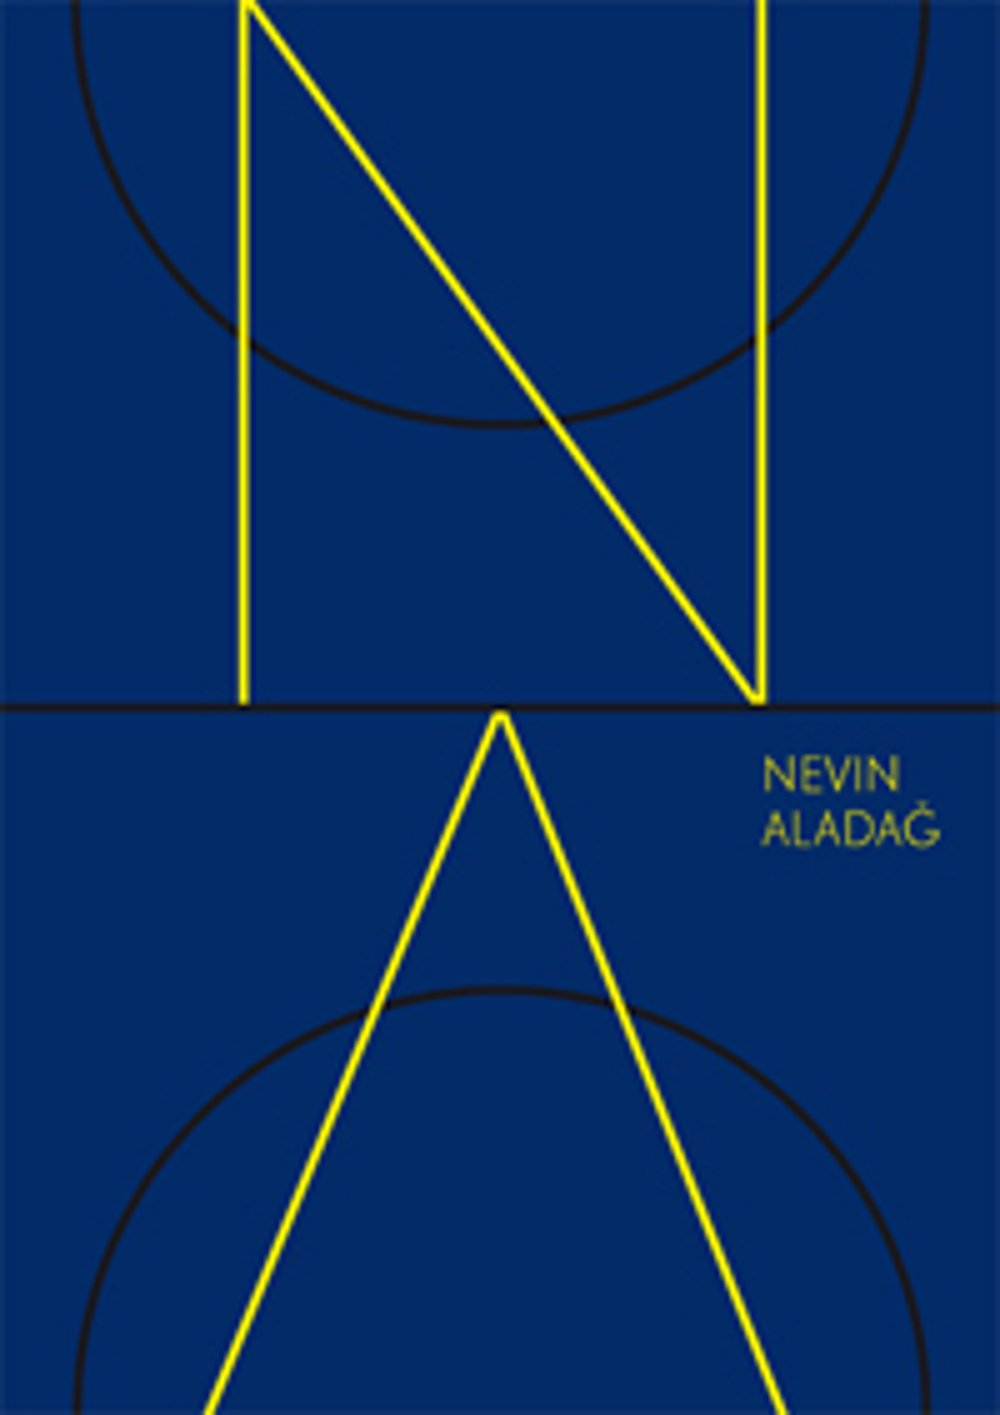 cover: Nevin Aladağ. 10 Jahre / 10 years